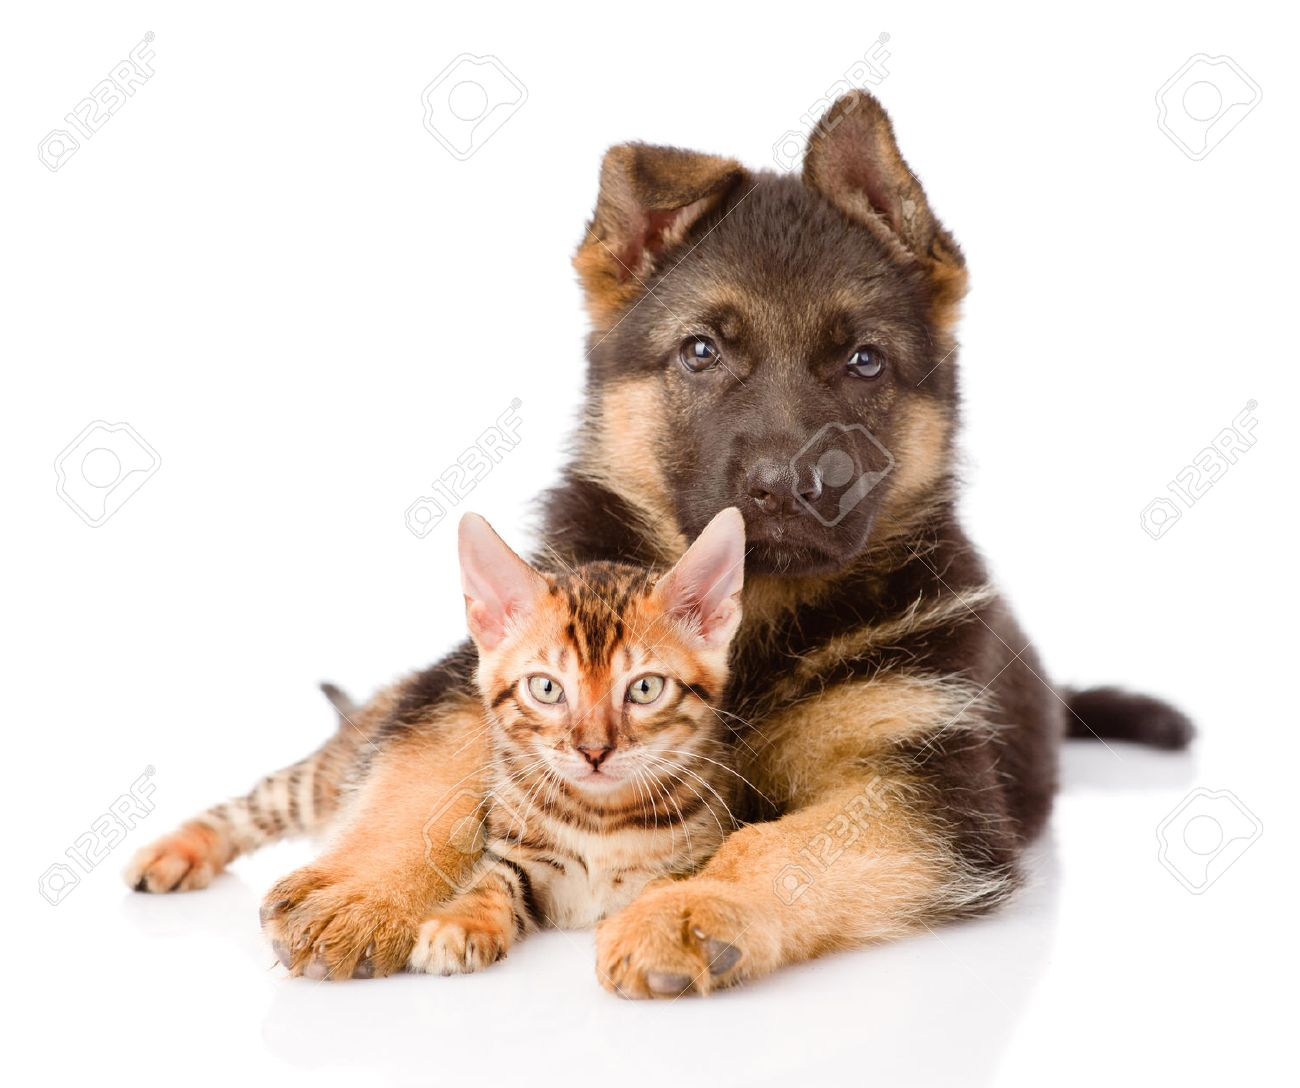 German Shepherd Puppy Dog Embracing Bengal Kitten Isolated On